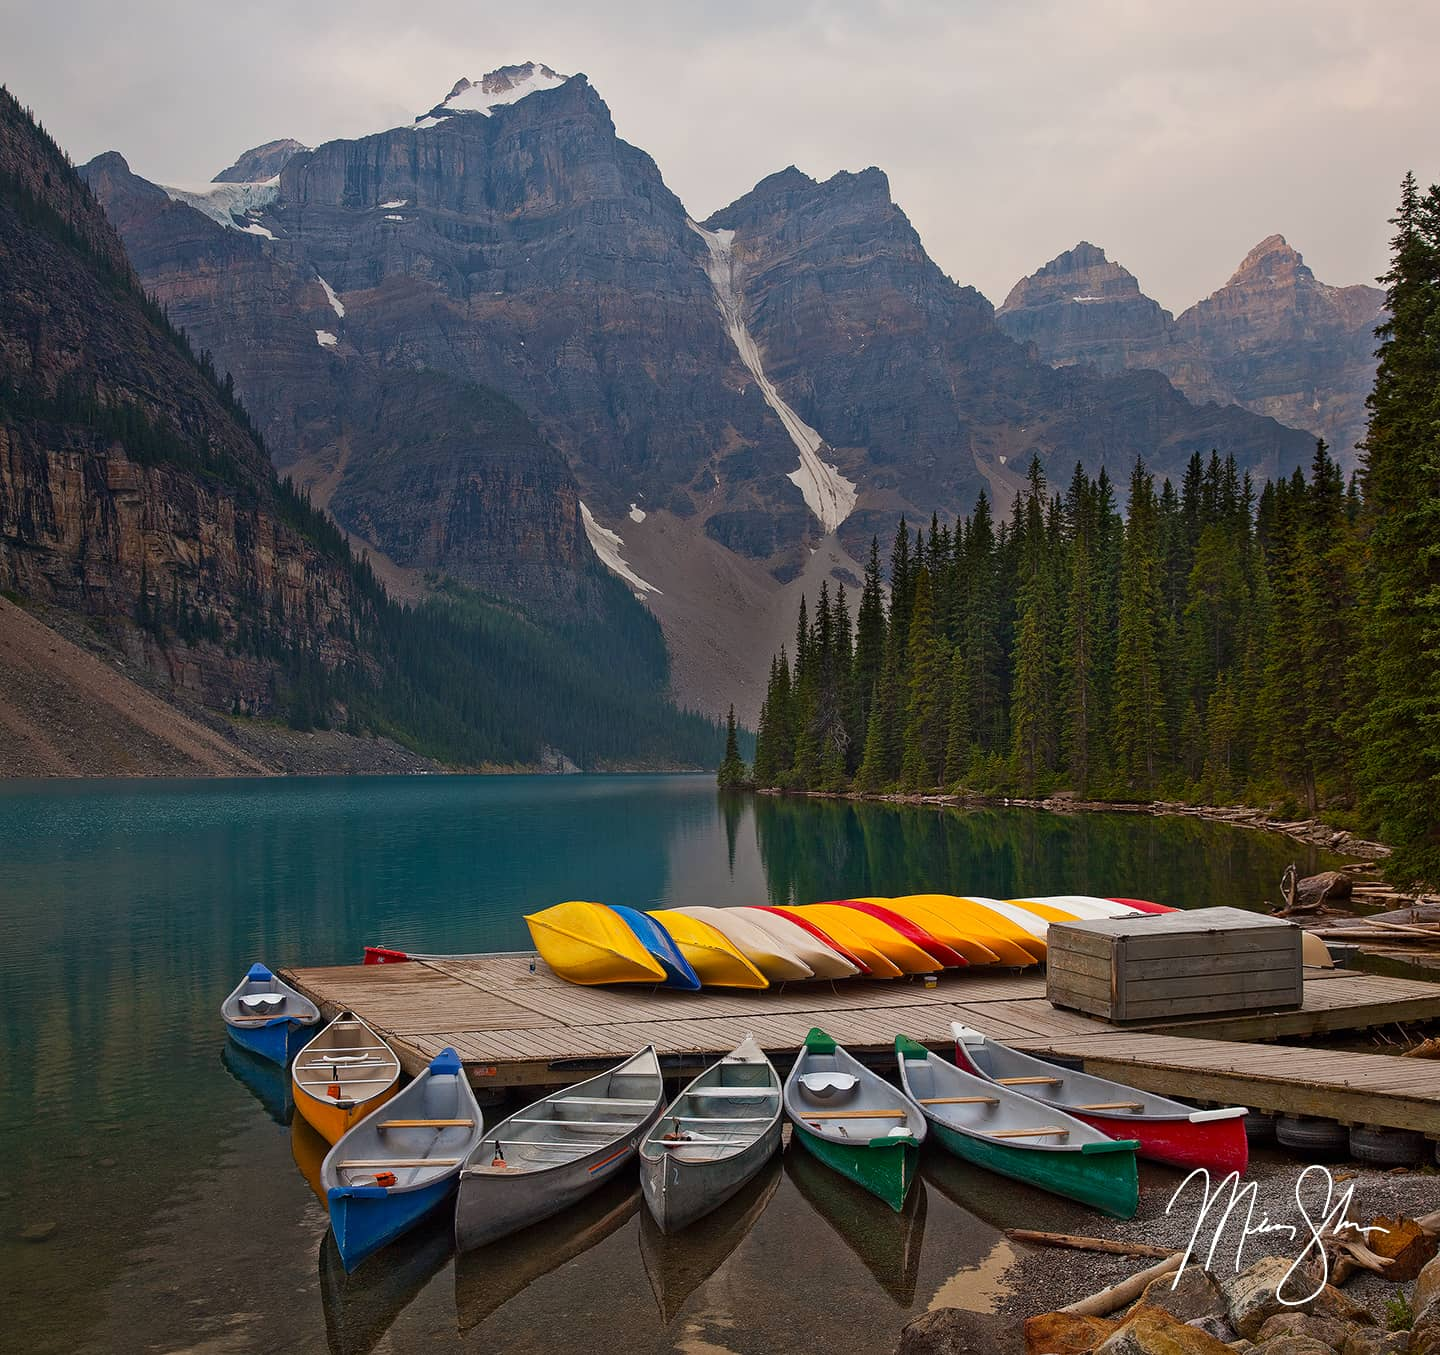 Colorful canoes at dock on Moraine Lake with mountains in